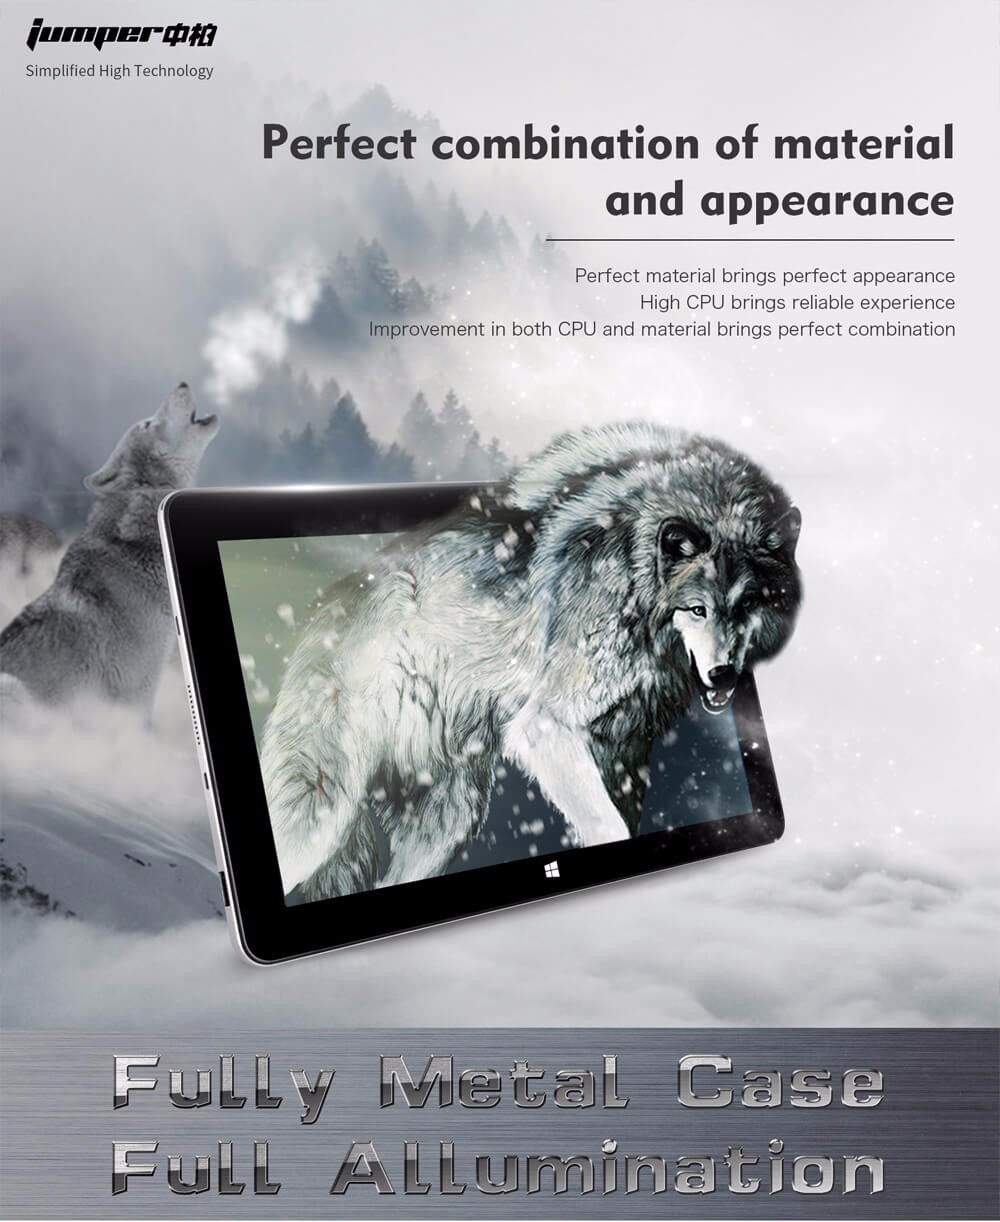 Jumper EZpad 6 M6 Tablet 10.8 inch 2GB/32GB Intel Cherry Trail X5 Z8350 Quad Core 1.92GHz IPS 1366*768 - Silver